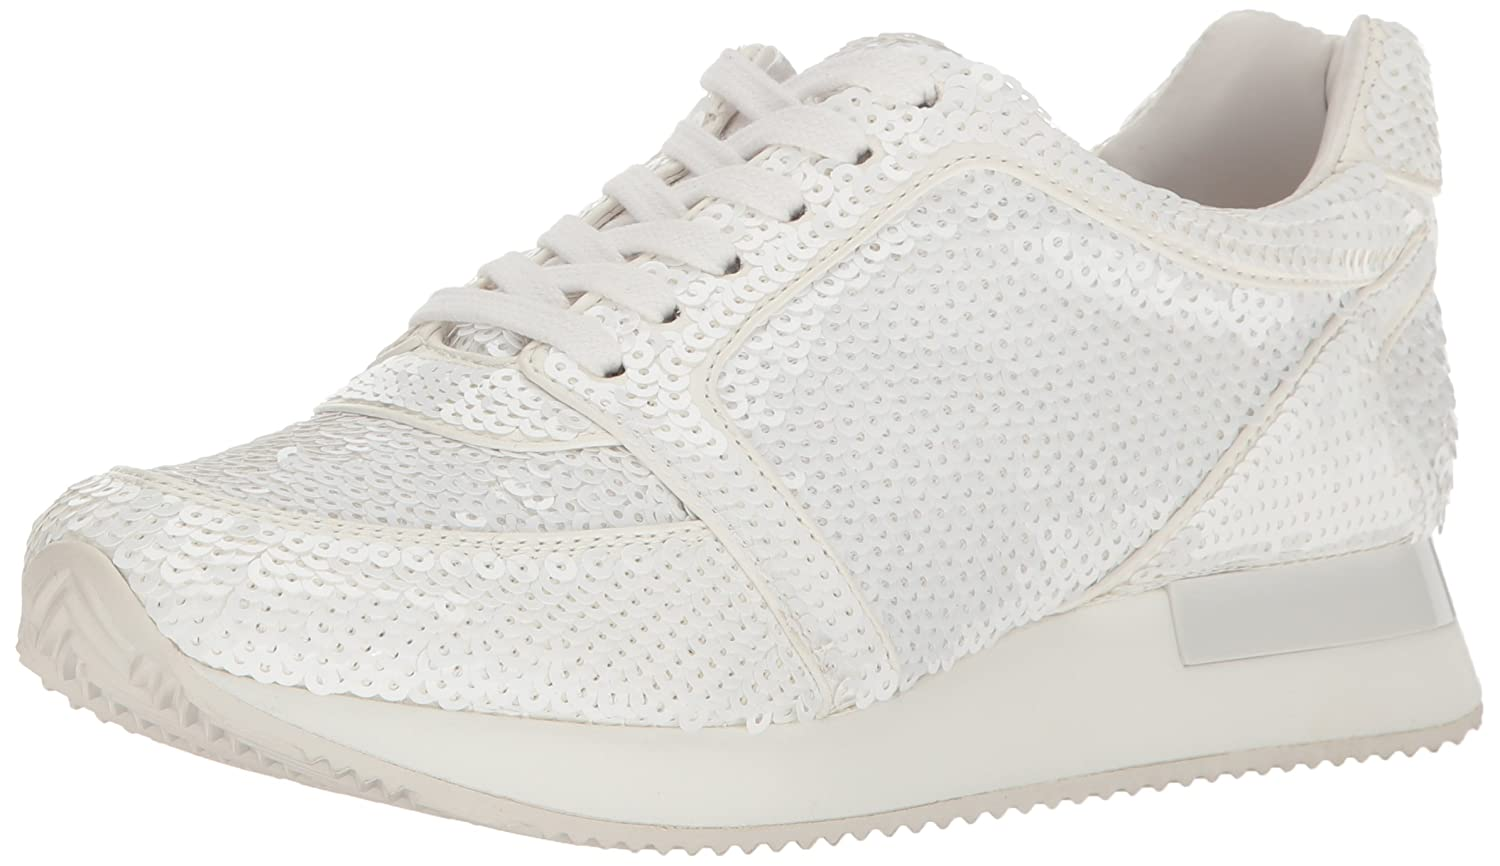 Katy Perry Women's The Lena Sneaker B01MT1EV1O 6.5 B(M) US|White